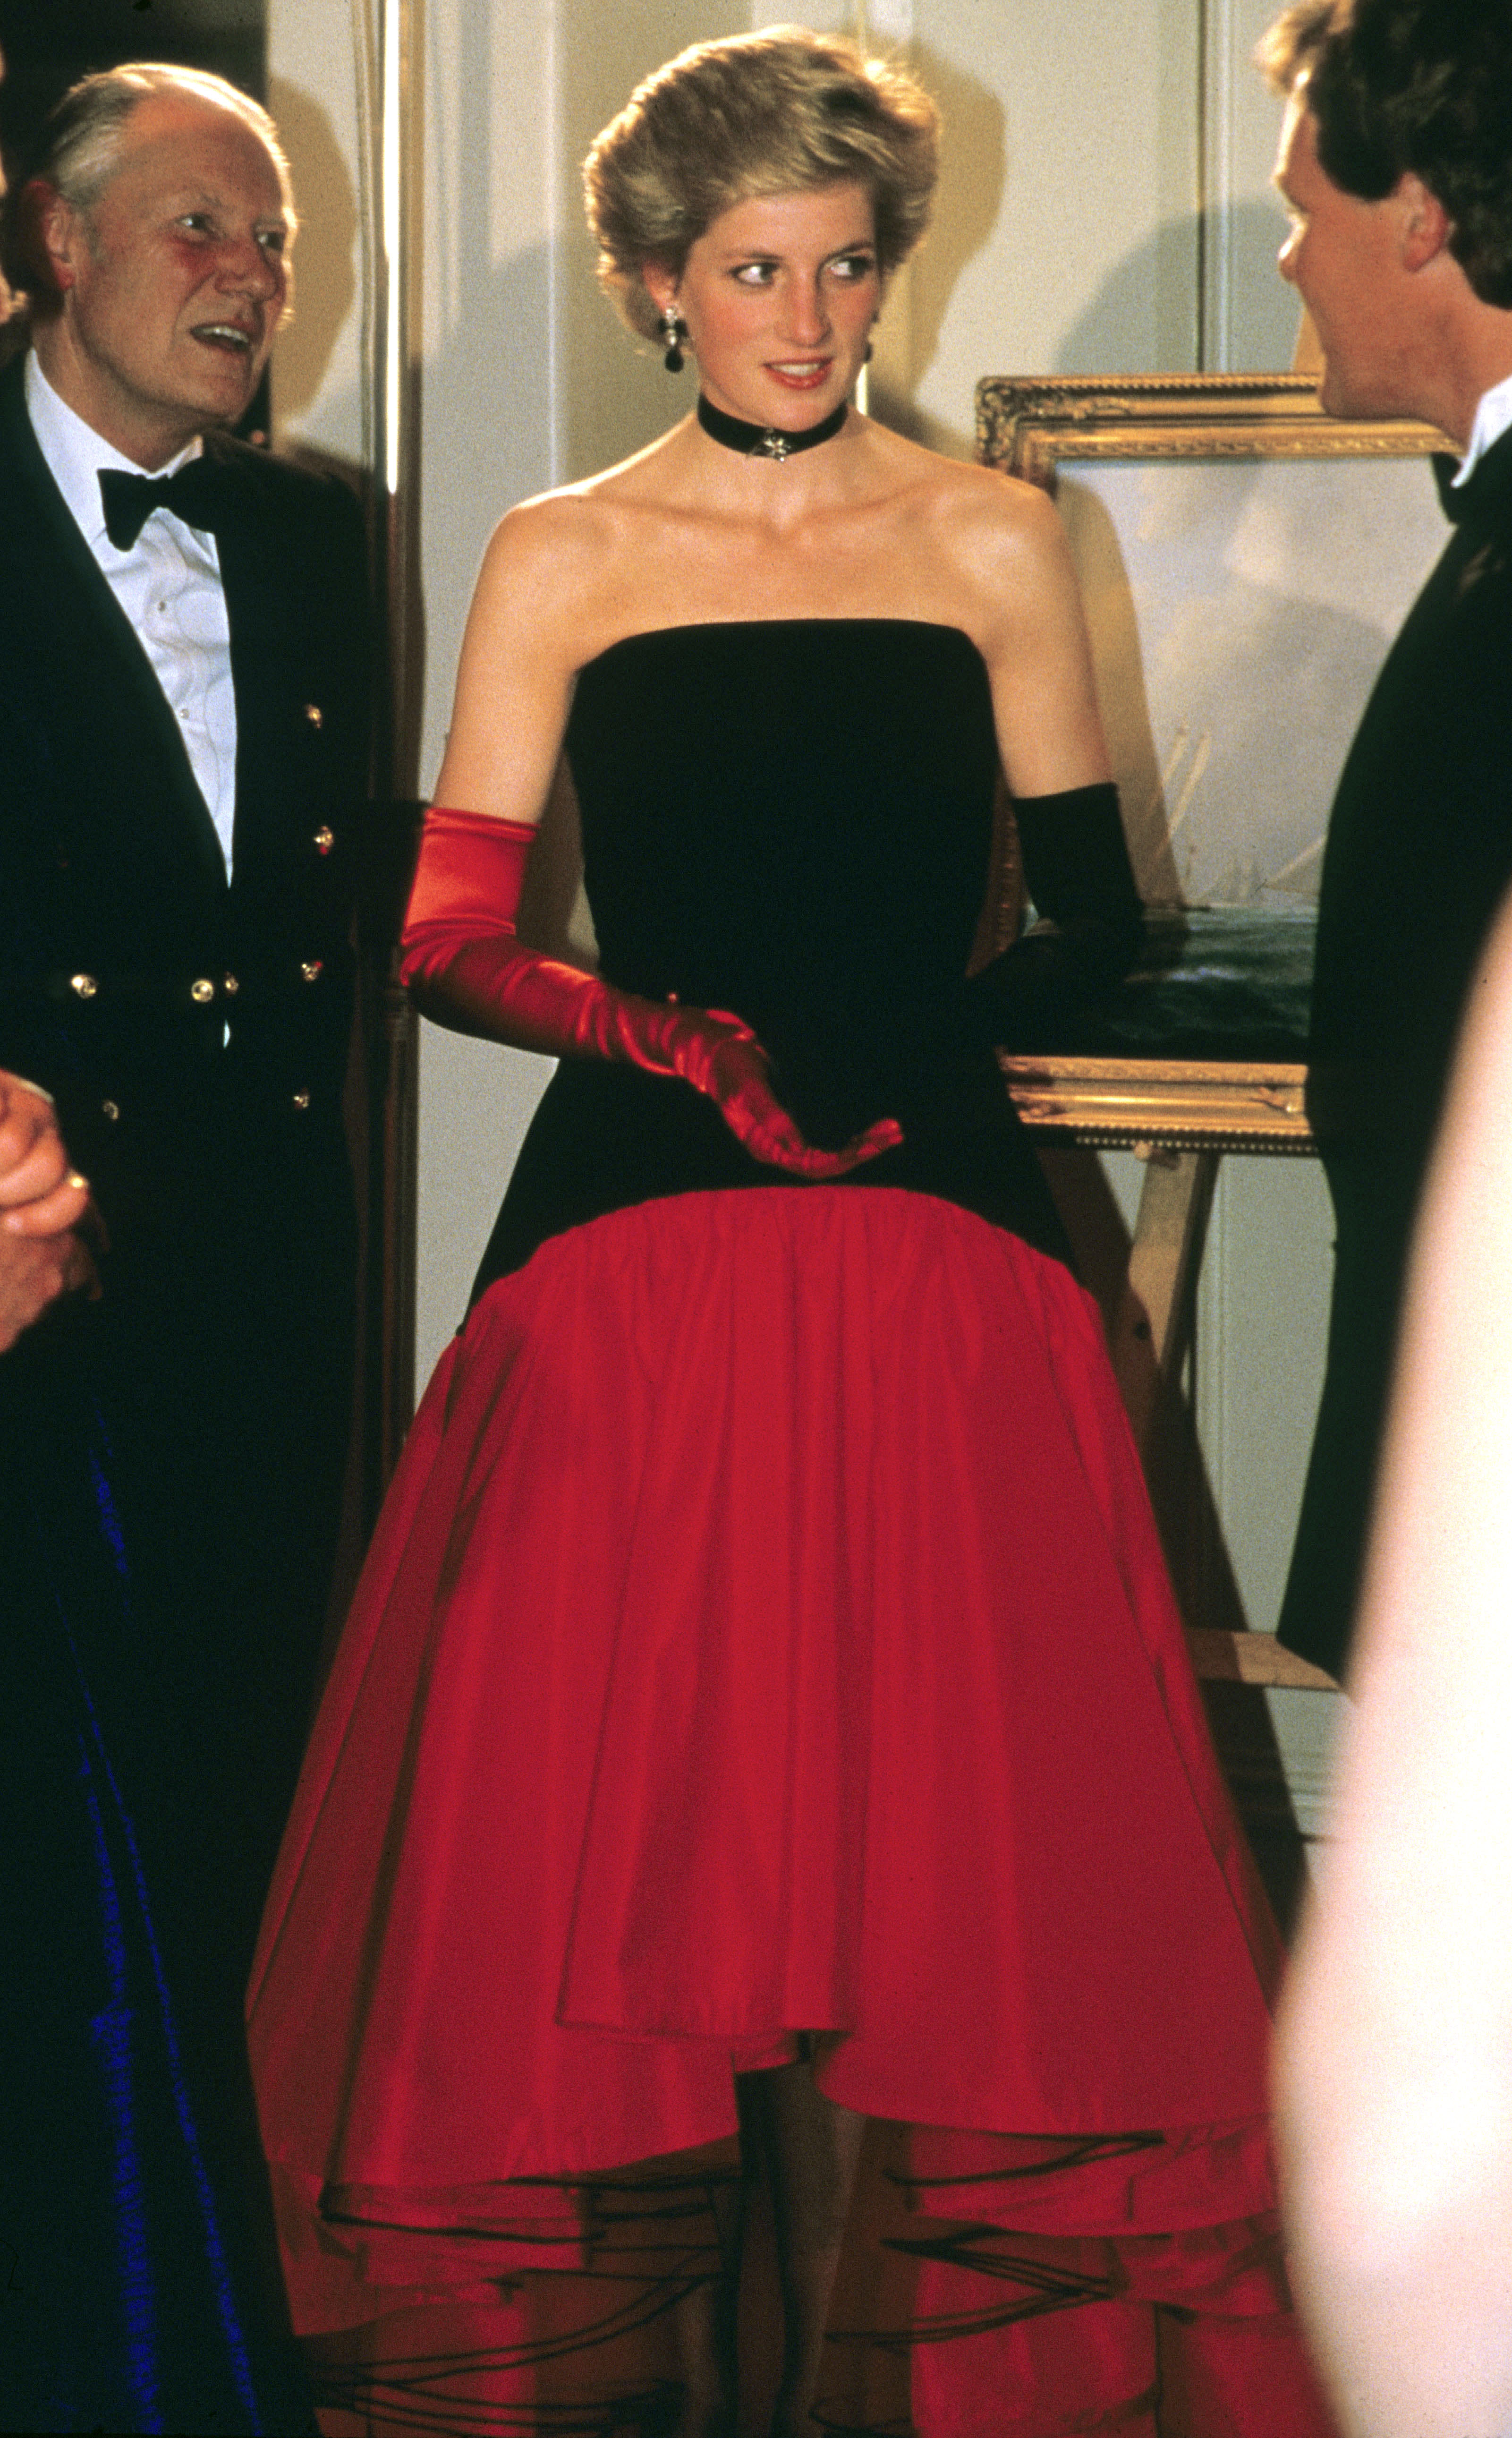 Princess Diana wore one red glove and one back glove while attending the America's Cup Ball at the Grosvenor House hotel in London, in 1986. The gloves complemented her Murray Arbeid flamenco dress.